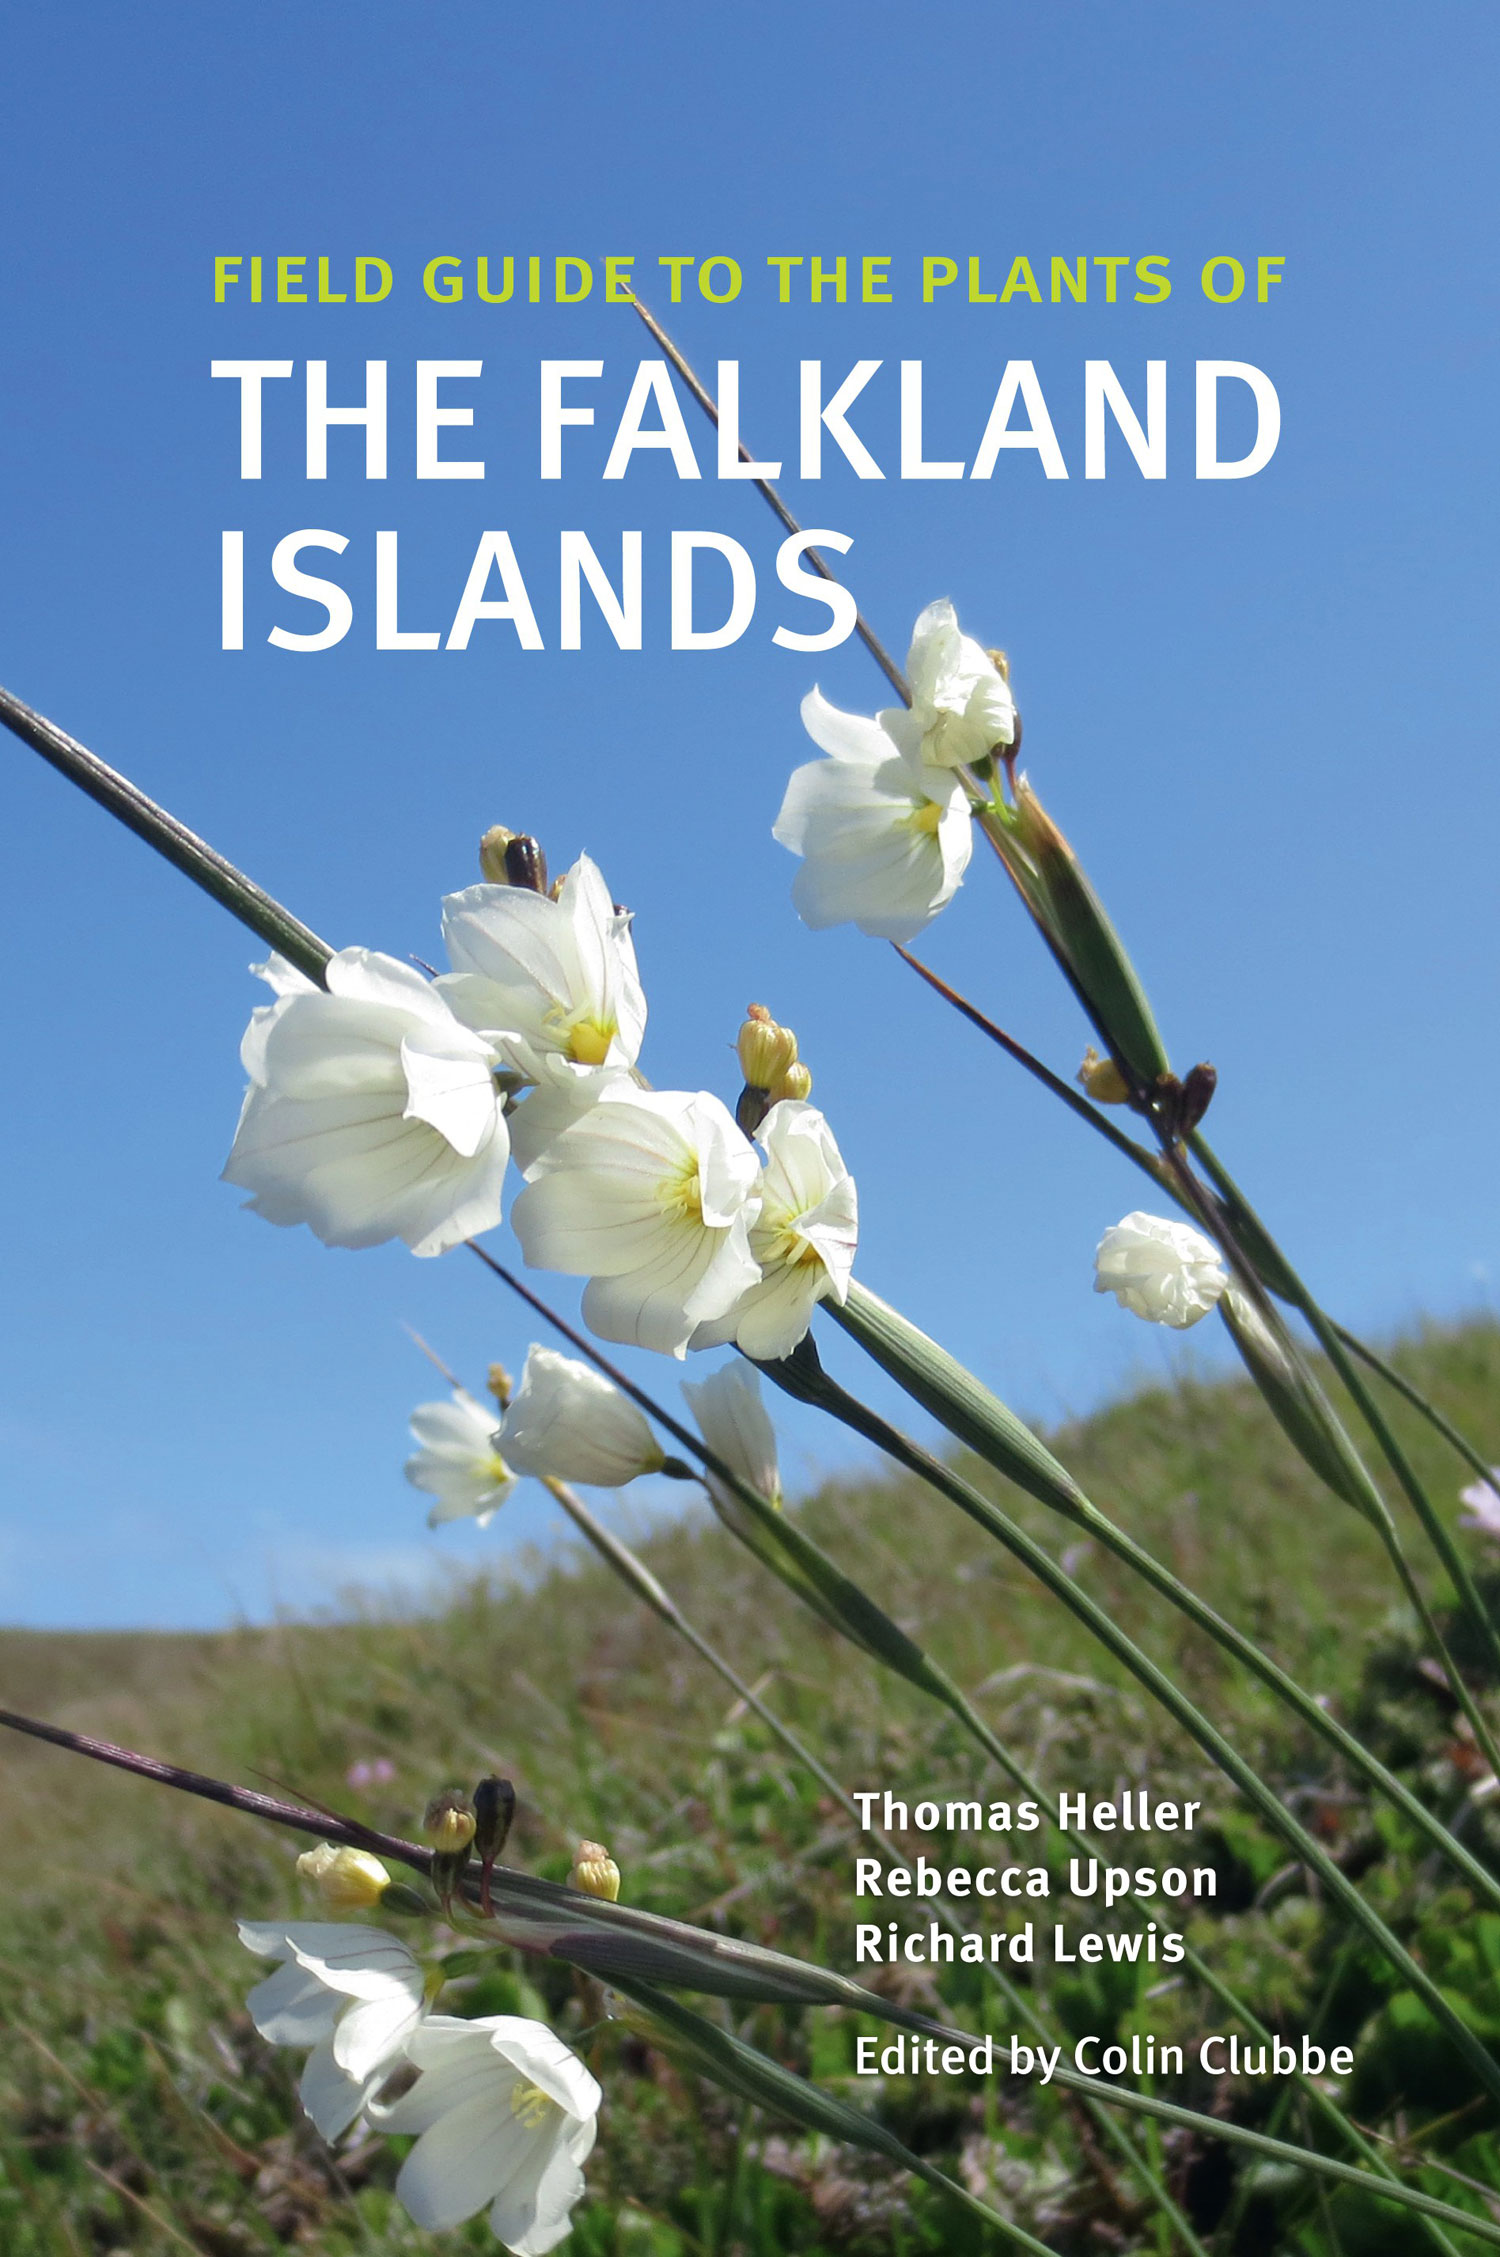 Cover of the Falklands field guide with a white flower in front of blue sky